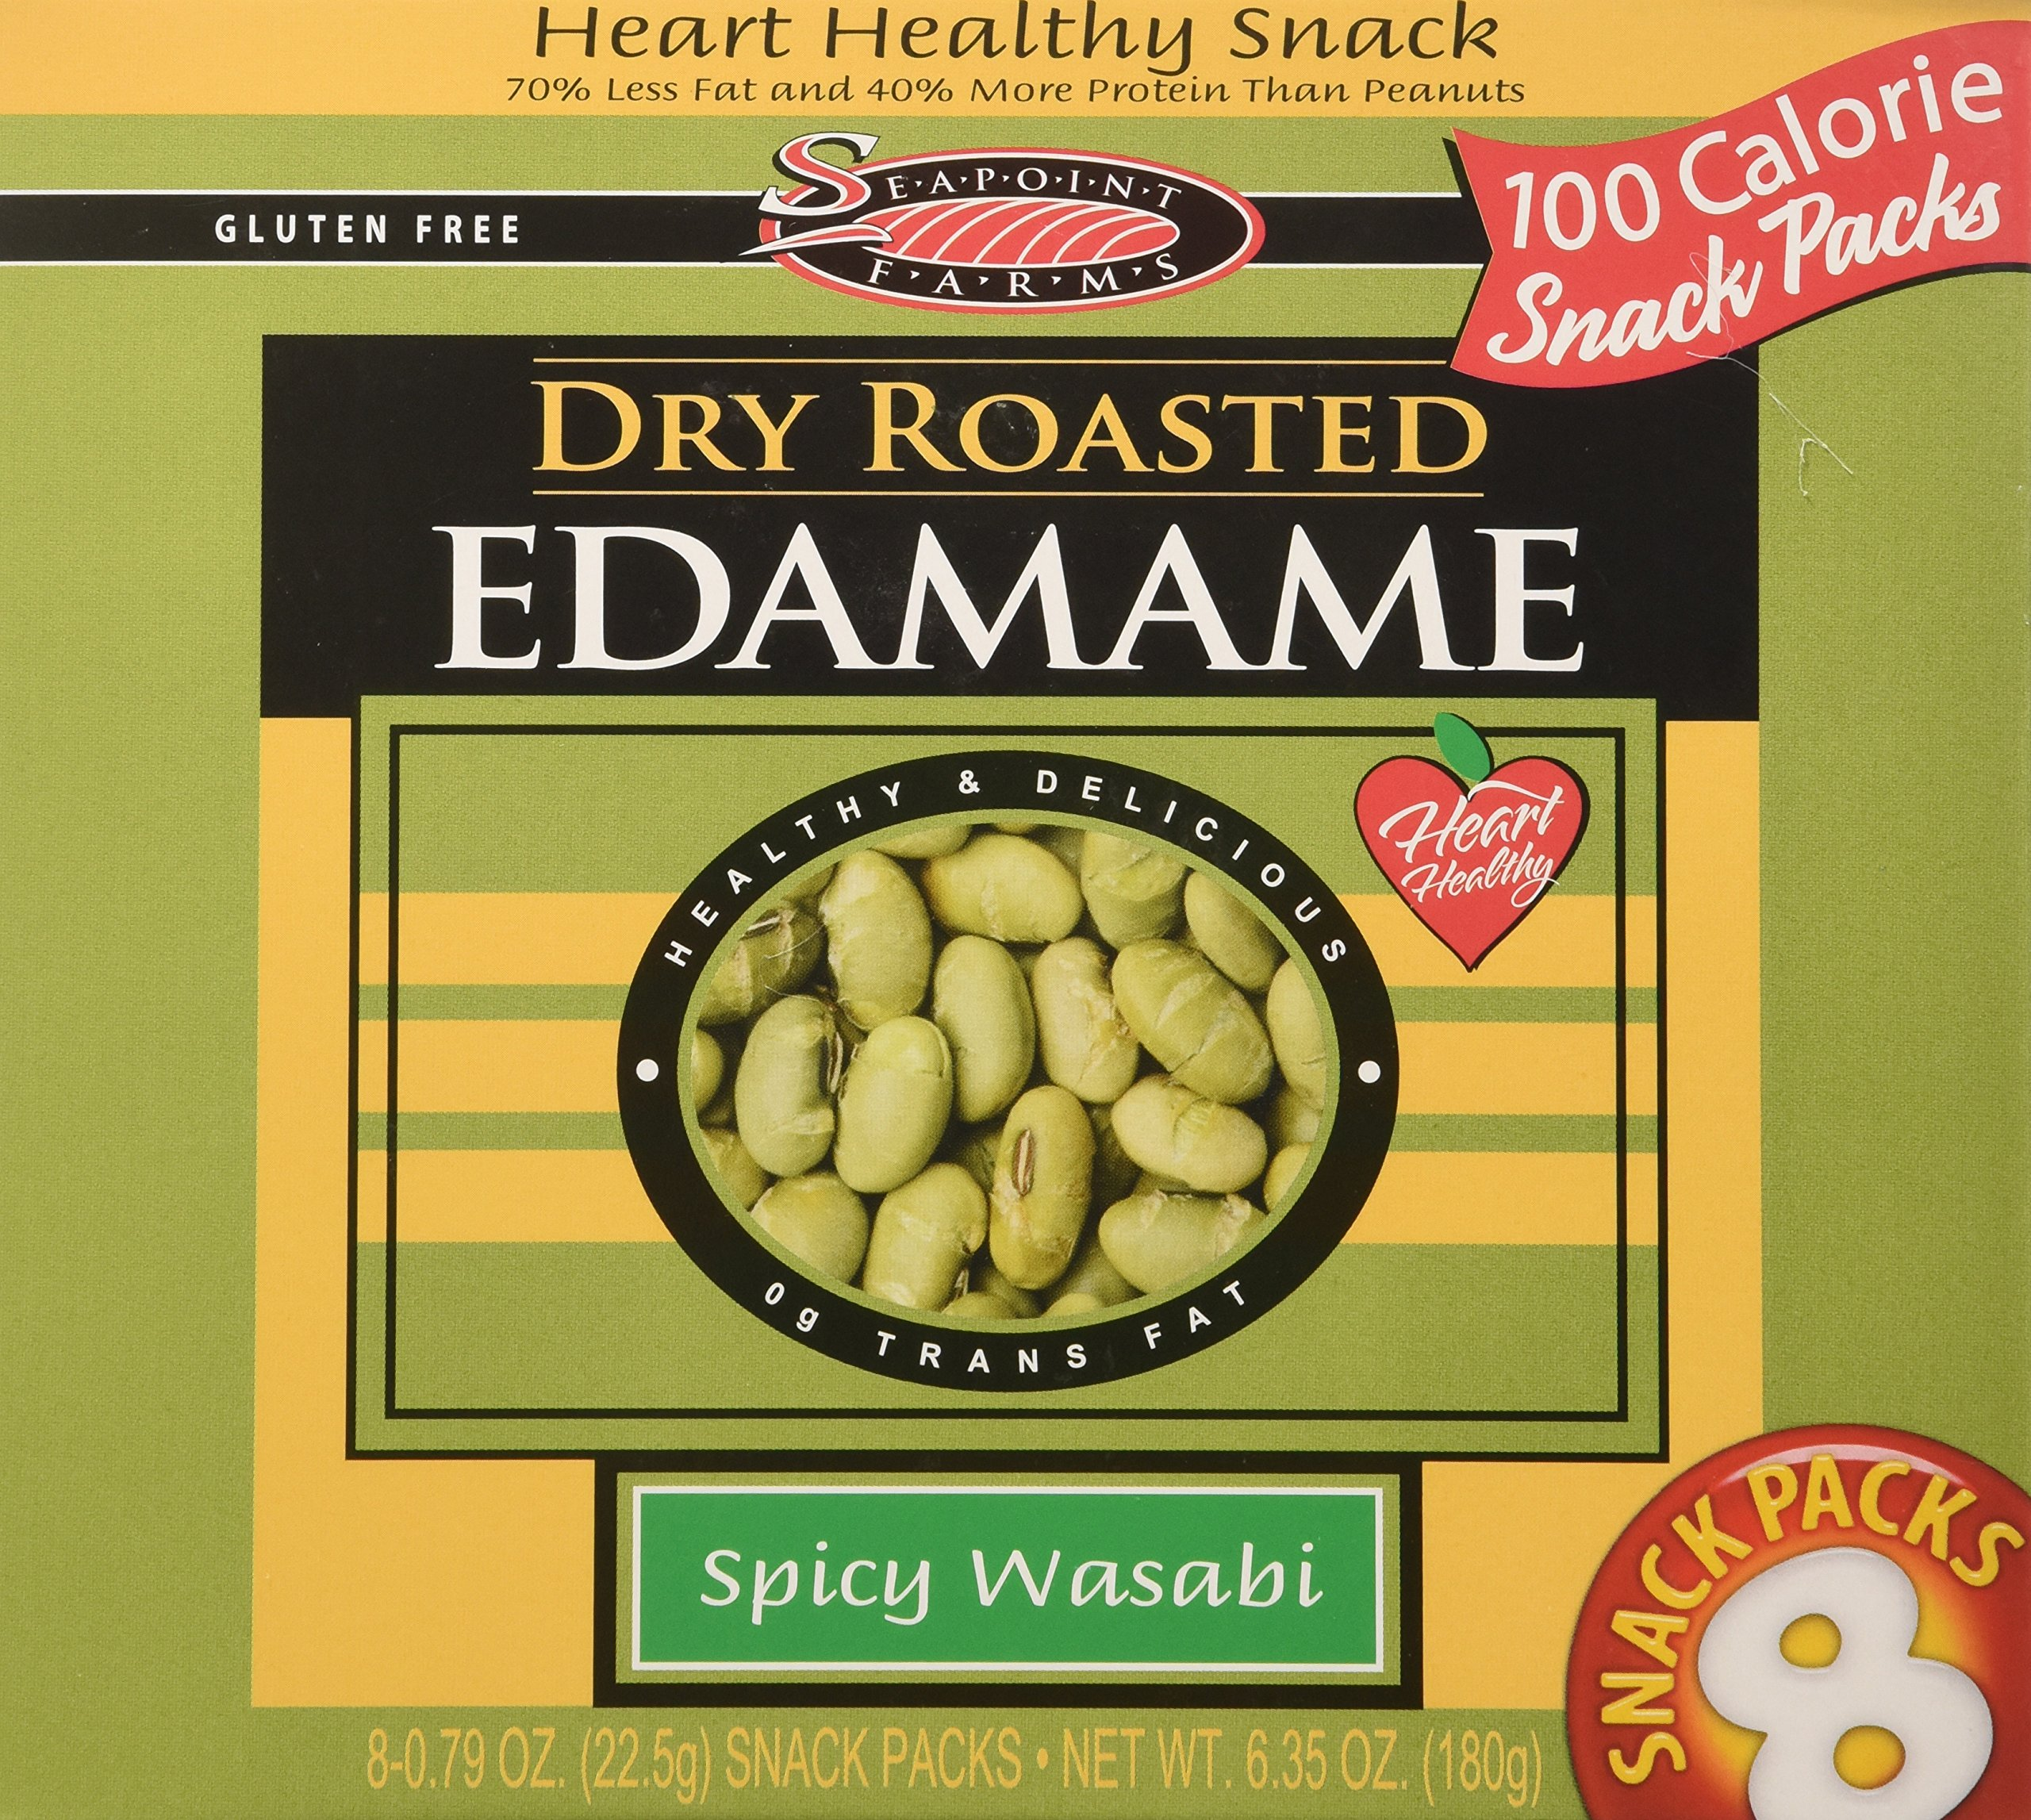 Seapoint Farms Dry Roasted Edamame Spicy Wasabi 8 Snack Packs by Seapoint Farms